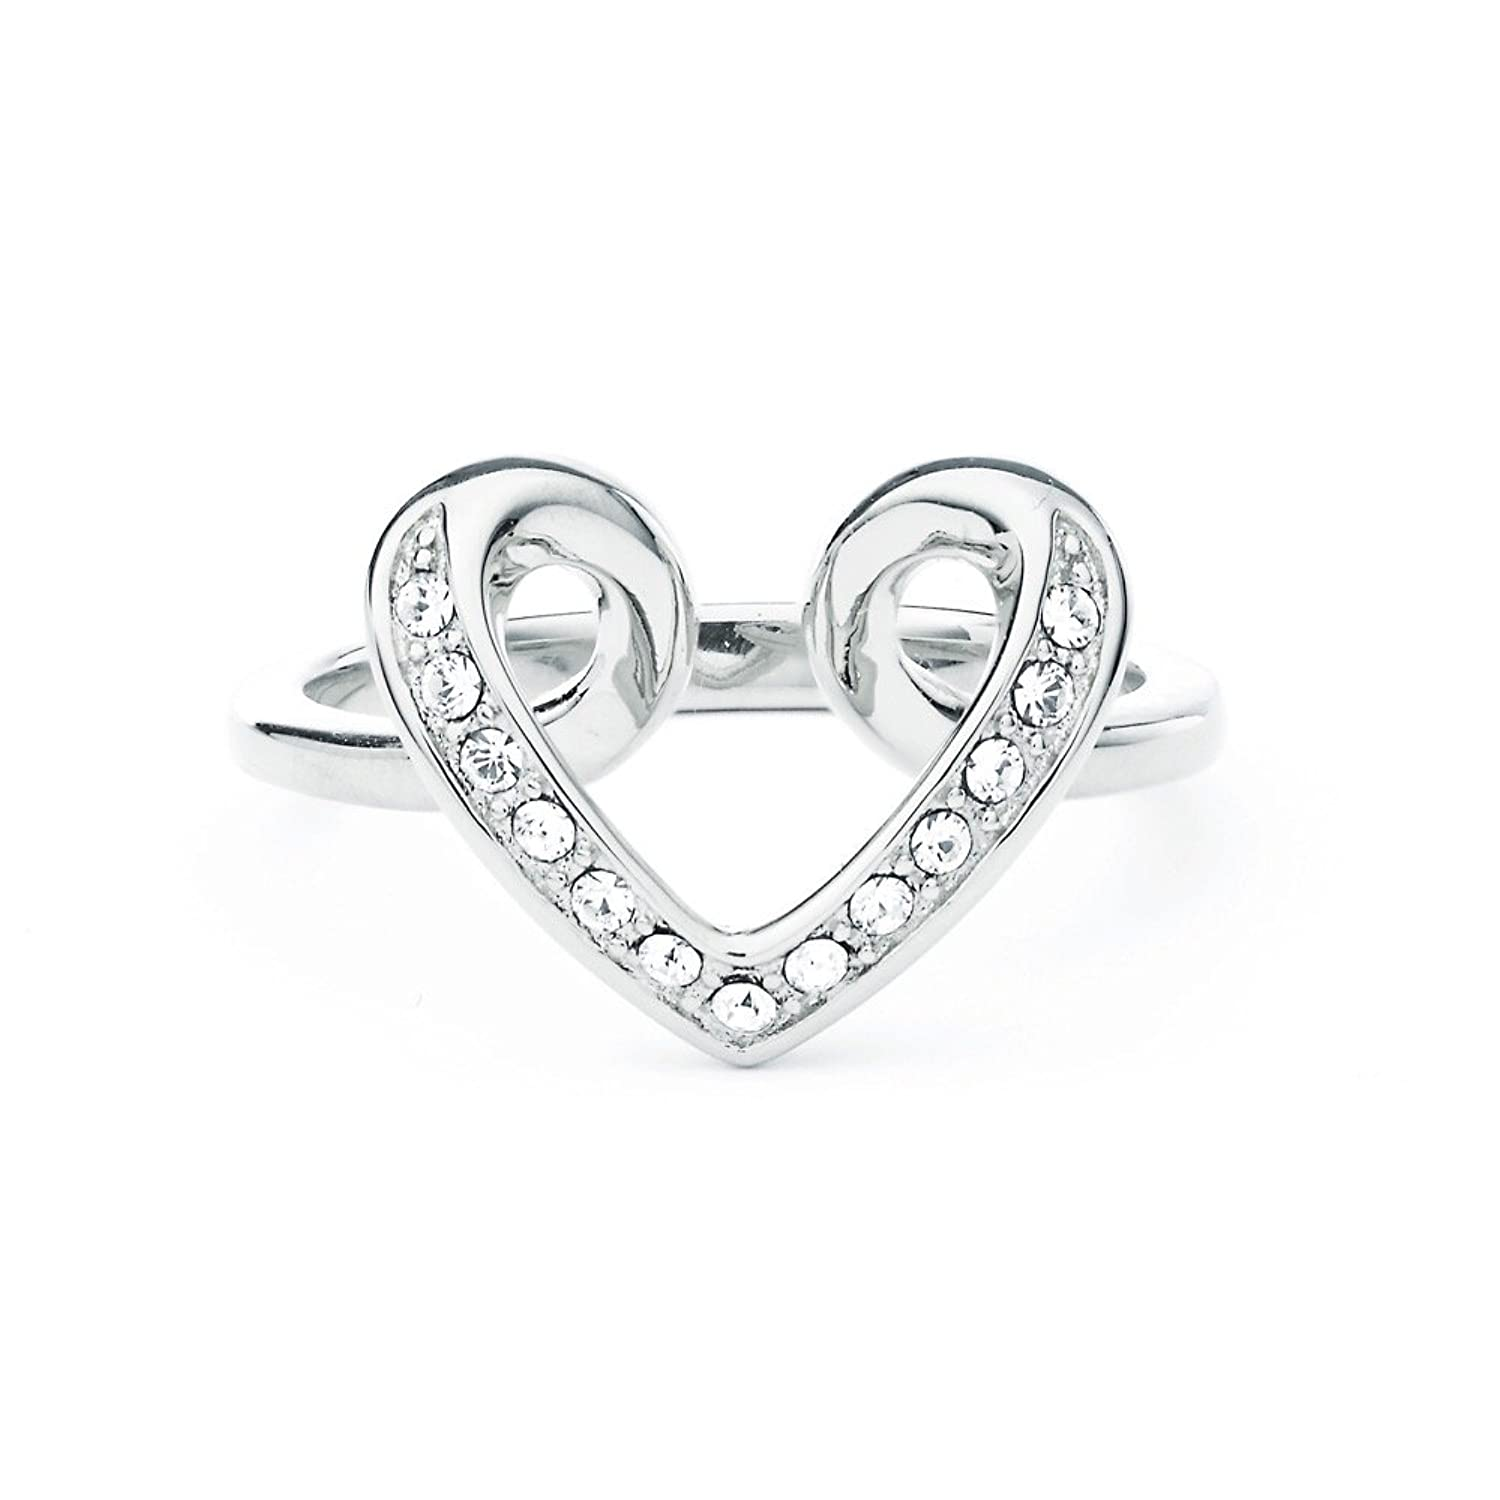 My Jewellery Story MYJS Cupidon Heart Love Rhodium Plated Ring with Clear Swarovski Crystals